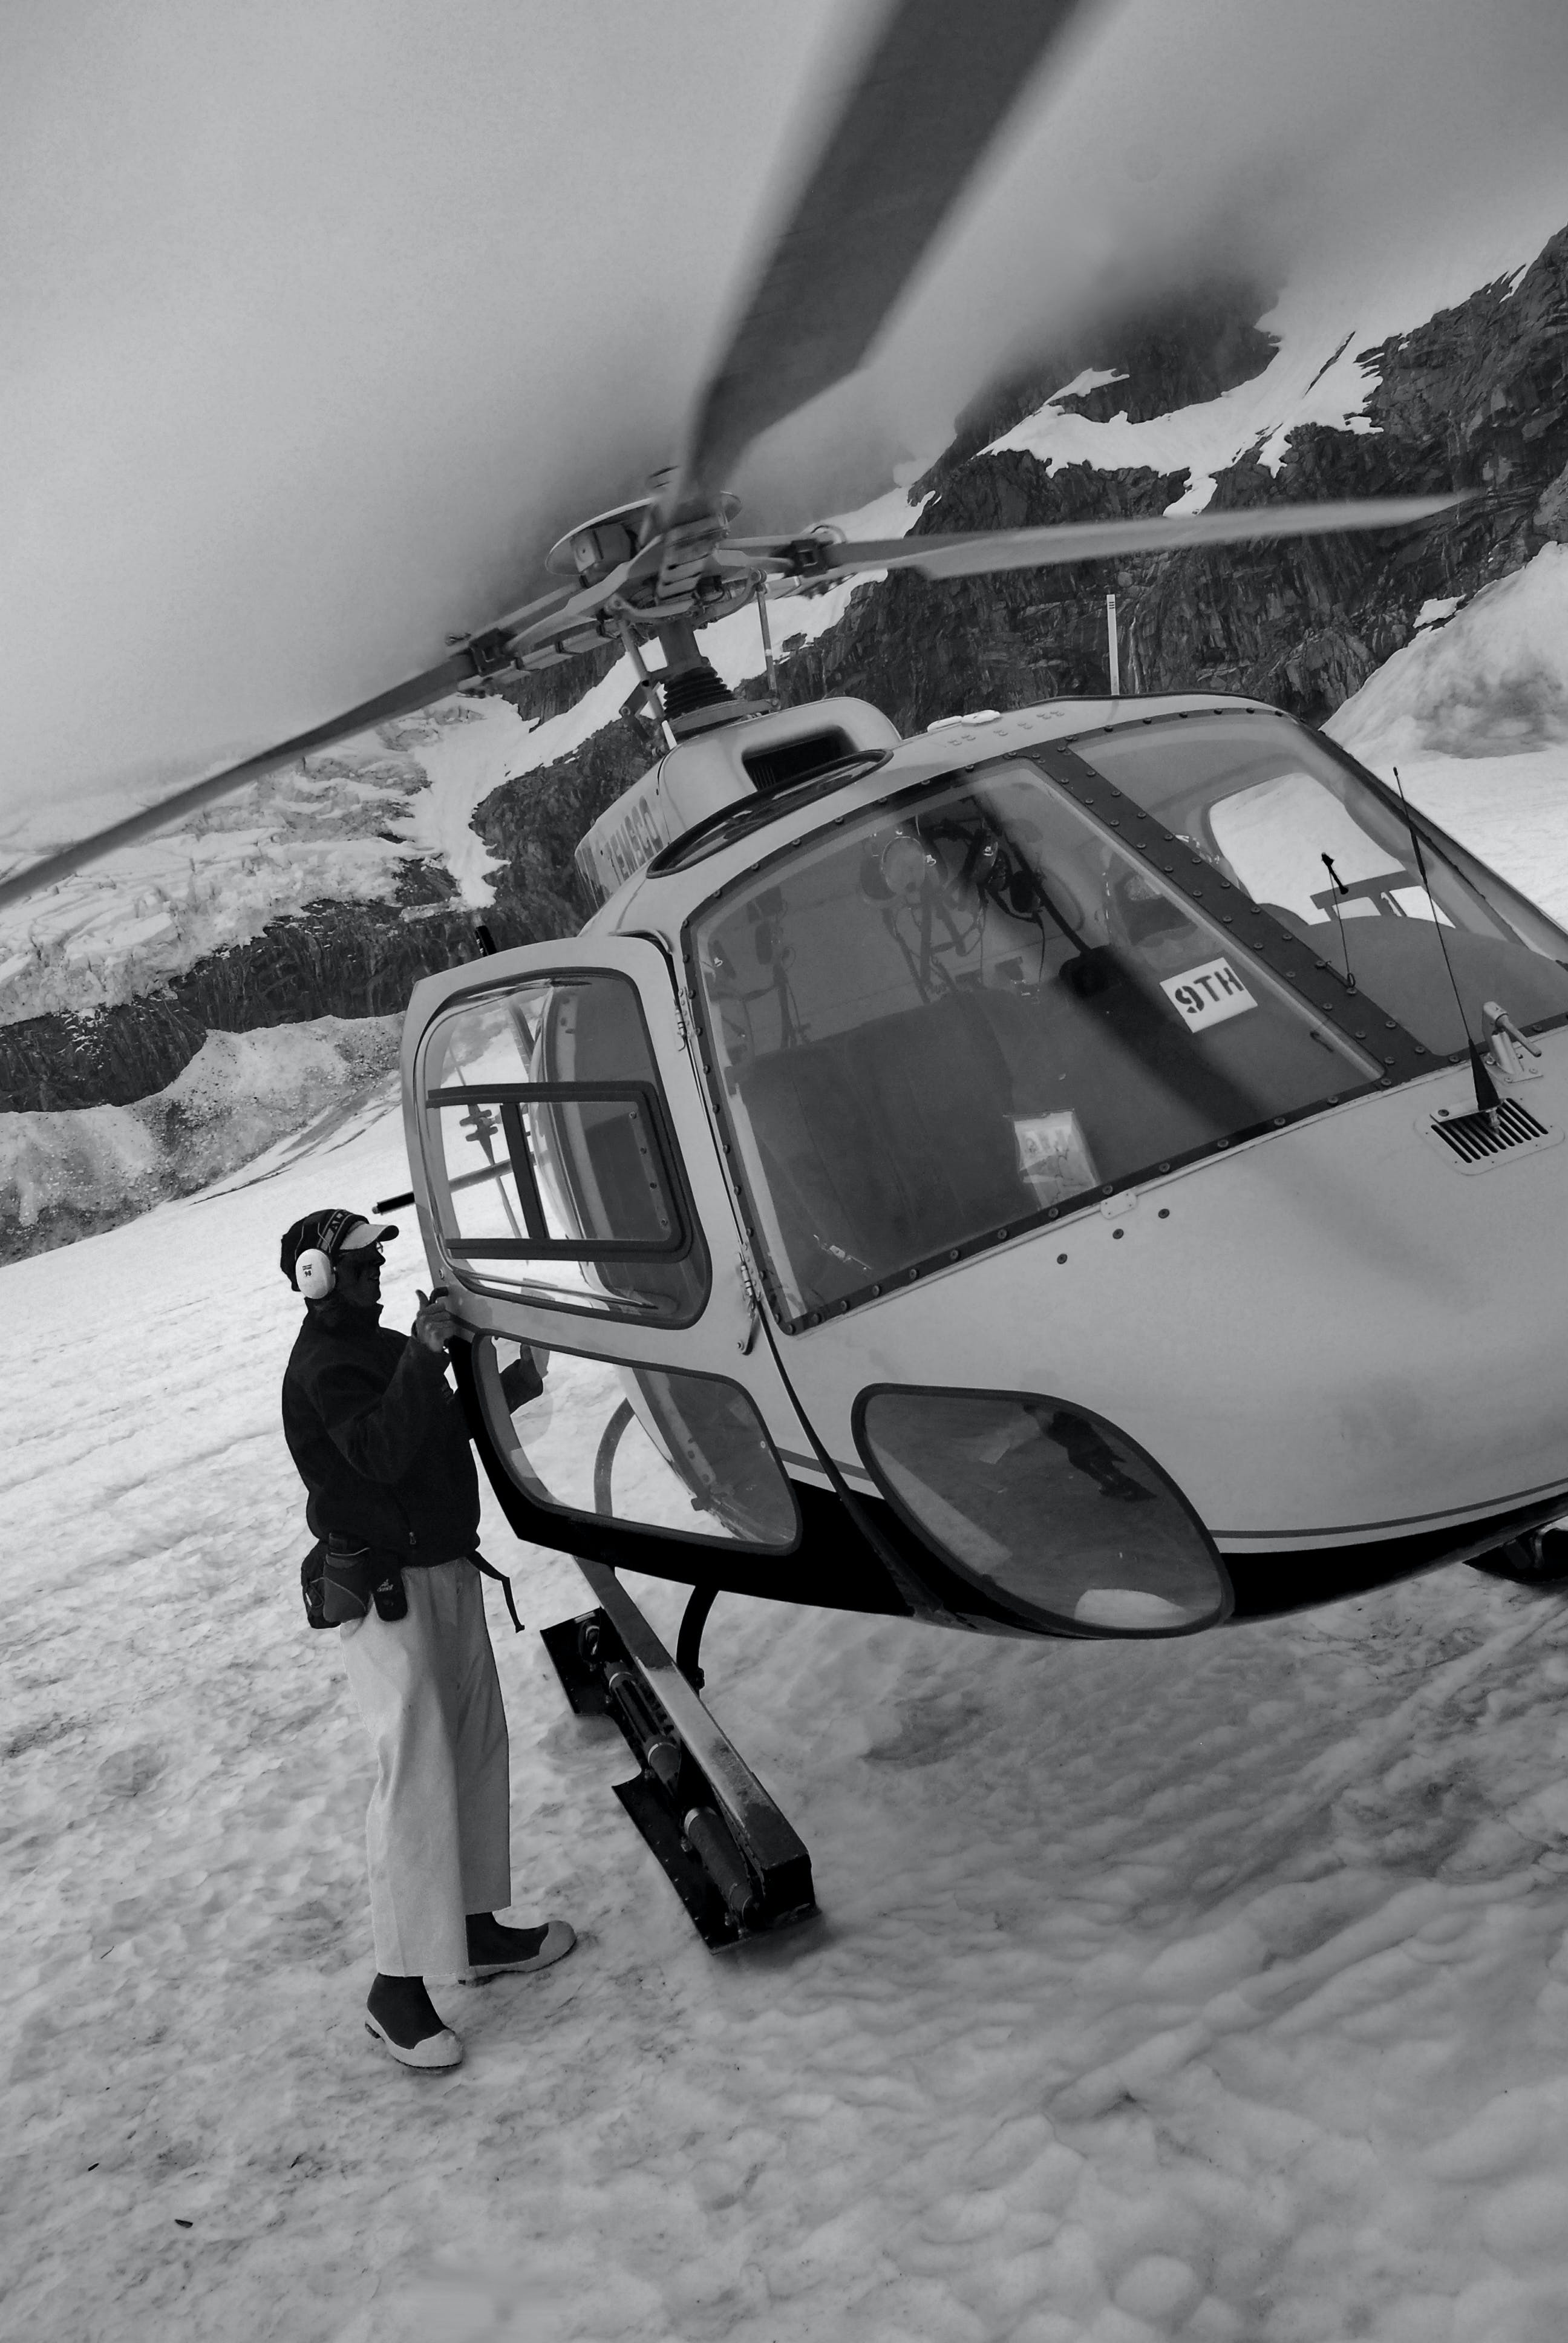 Free stock photo of black-and-white, helicopter